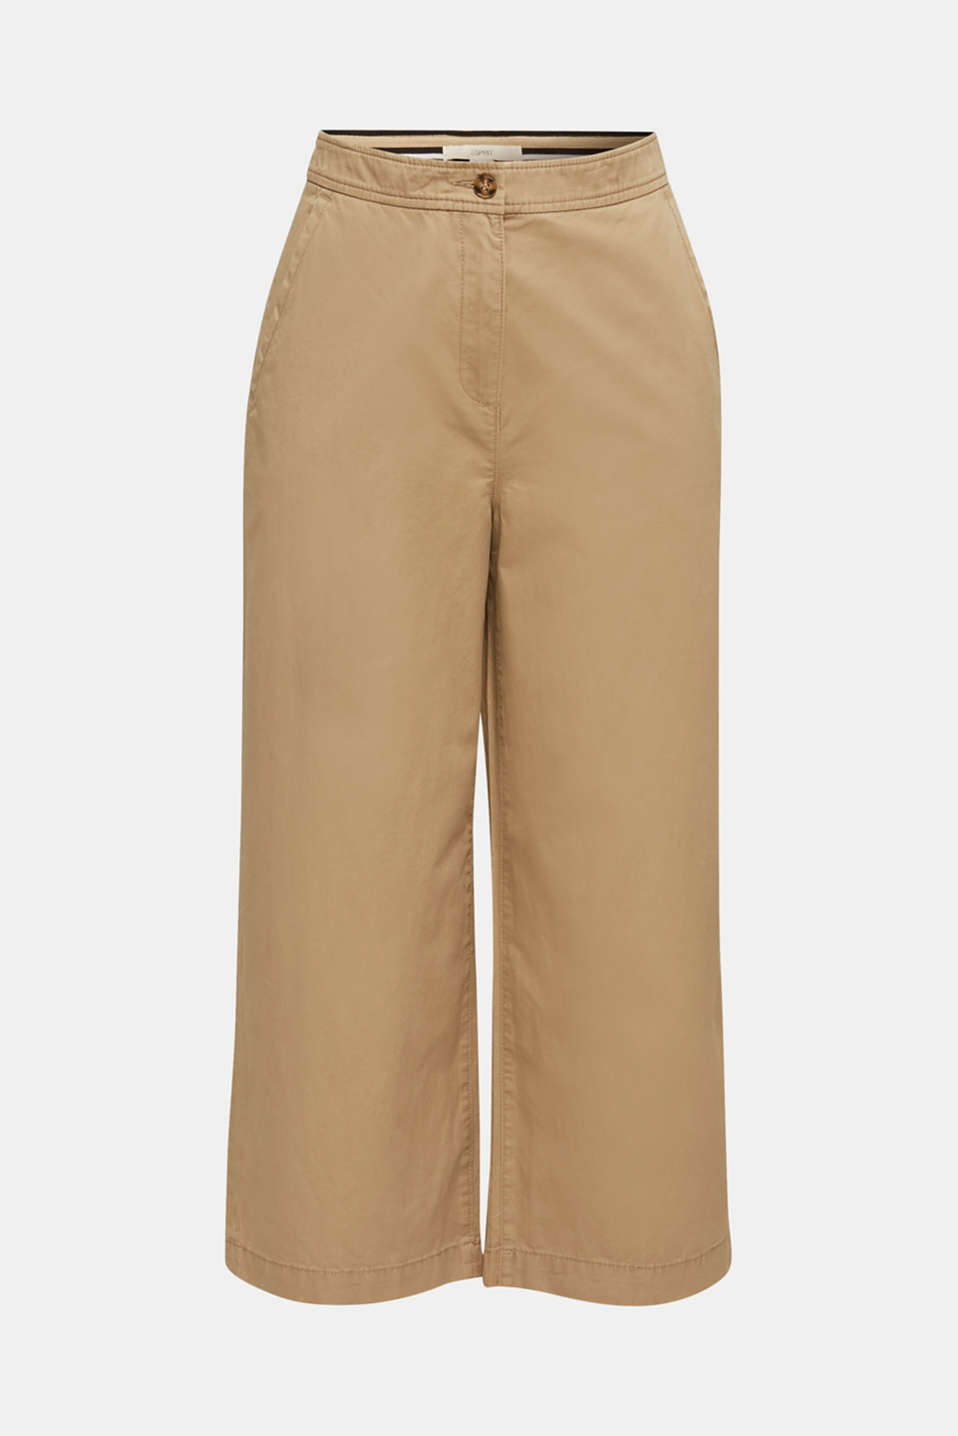 Sporty culottes, 100% cotton, BEIGE, detail image number 7